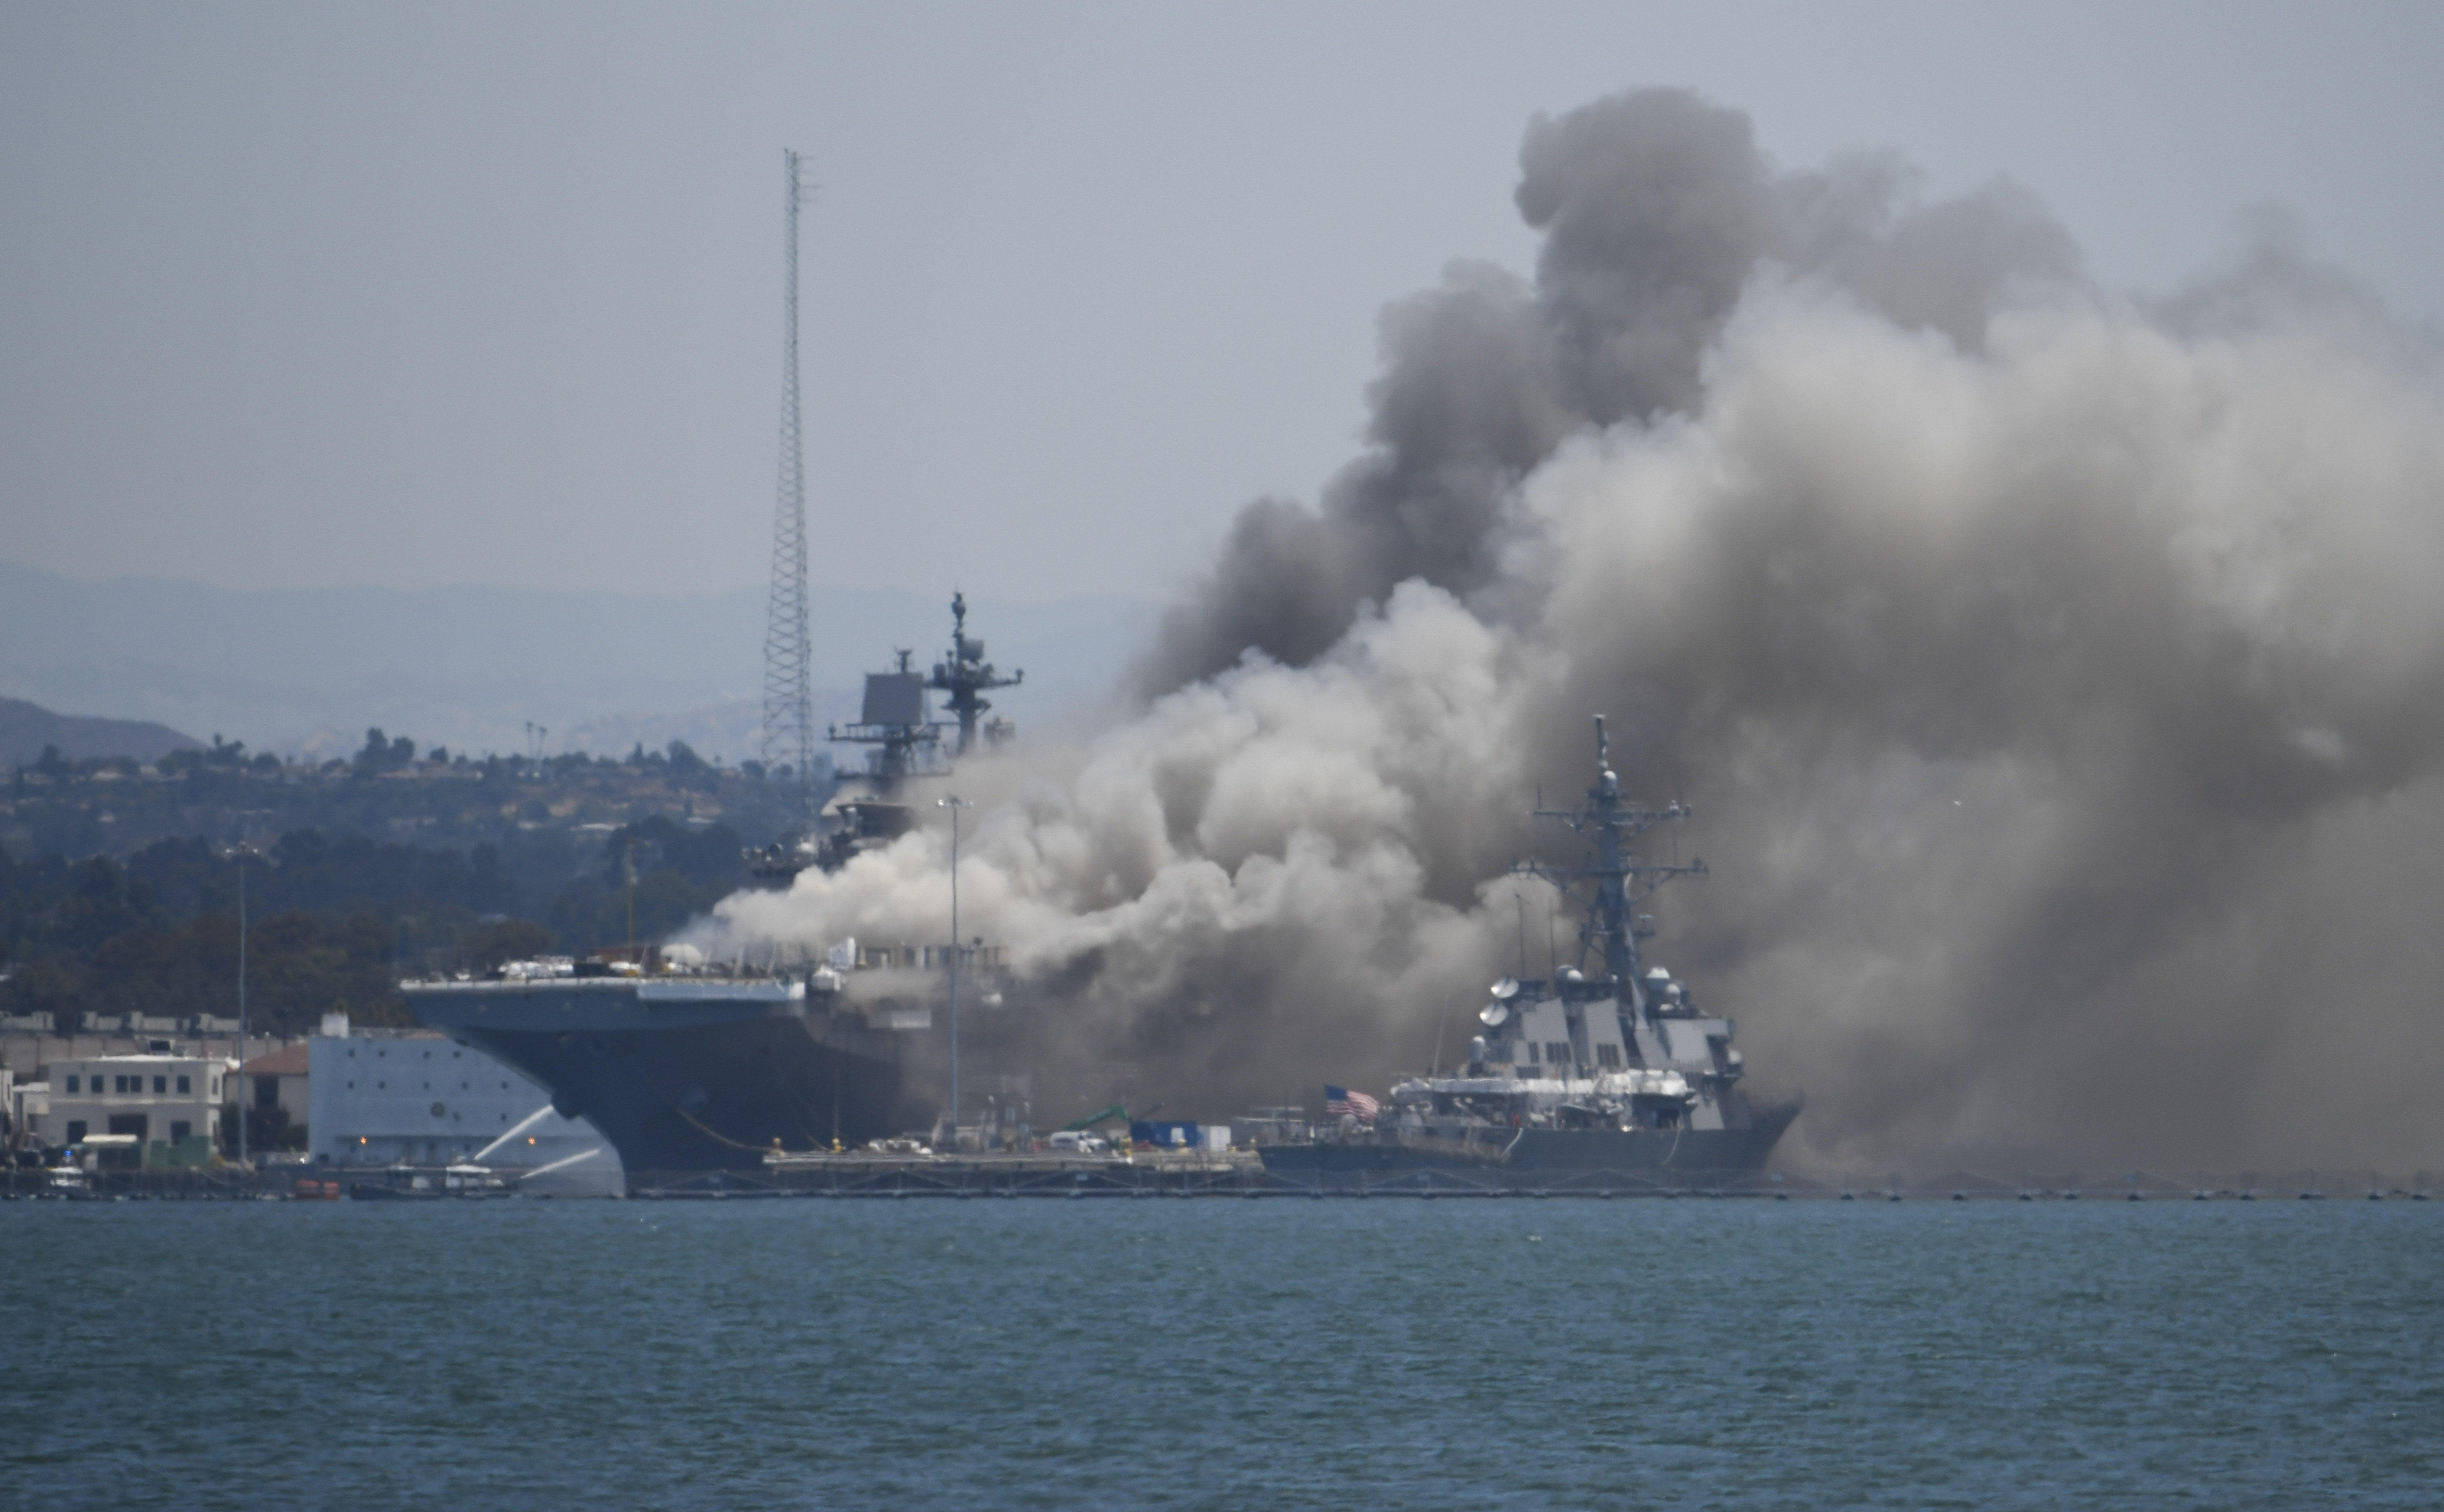 Fire erupts on board Navy ship in San Diego, injuring 17 sailors